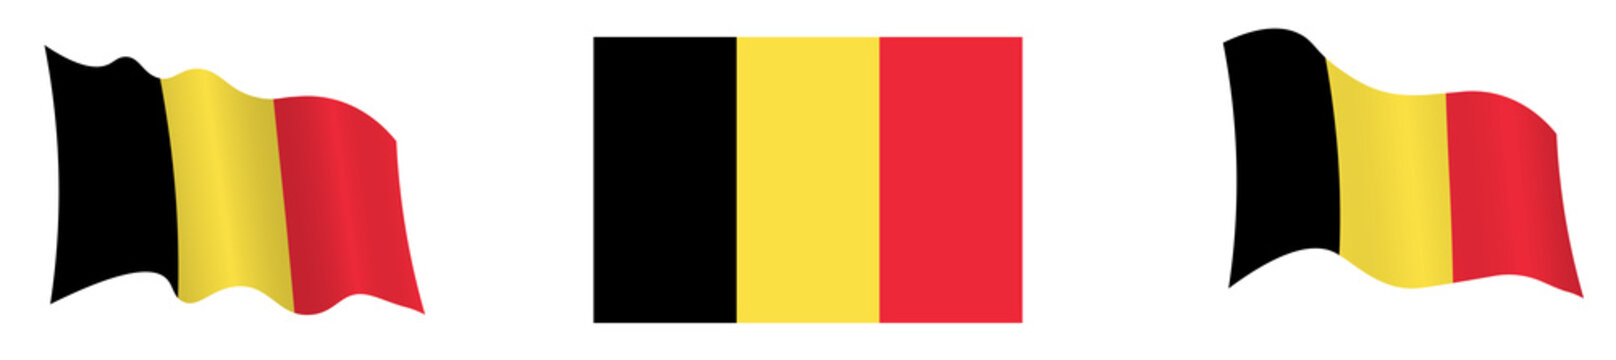 Flag Belgium in static position and in motion, developing in wind in exact colors and sizes, on white background